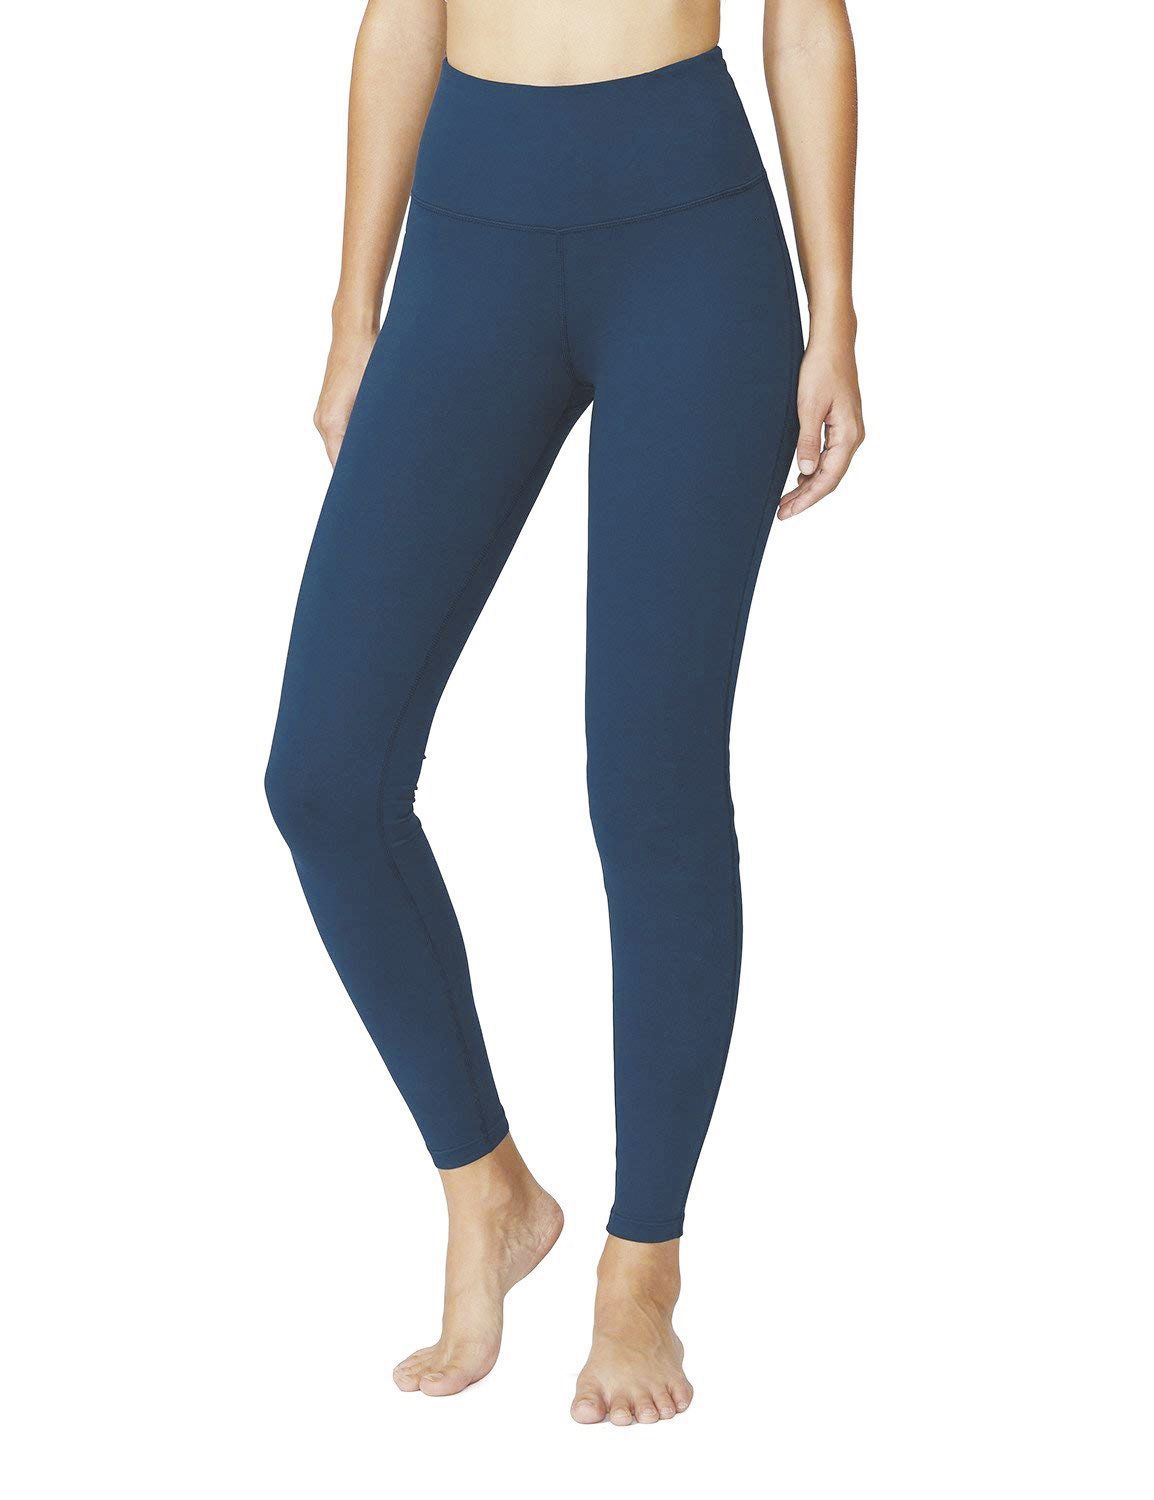 Stretch into spring with new yoga gear